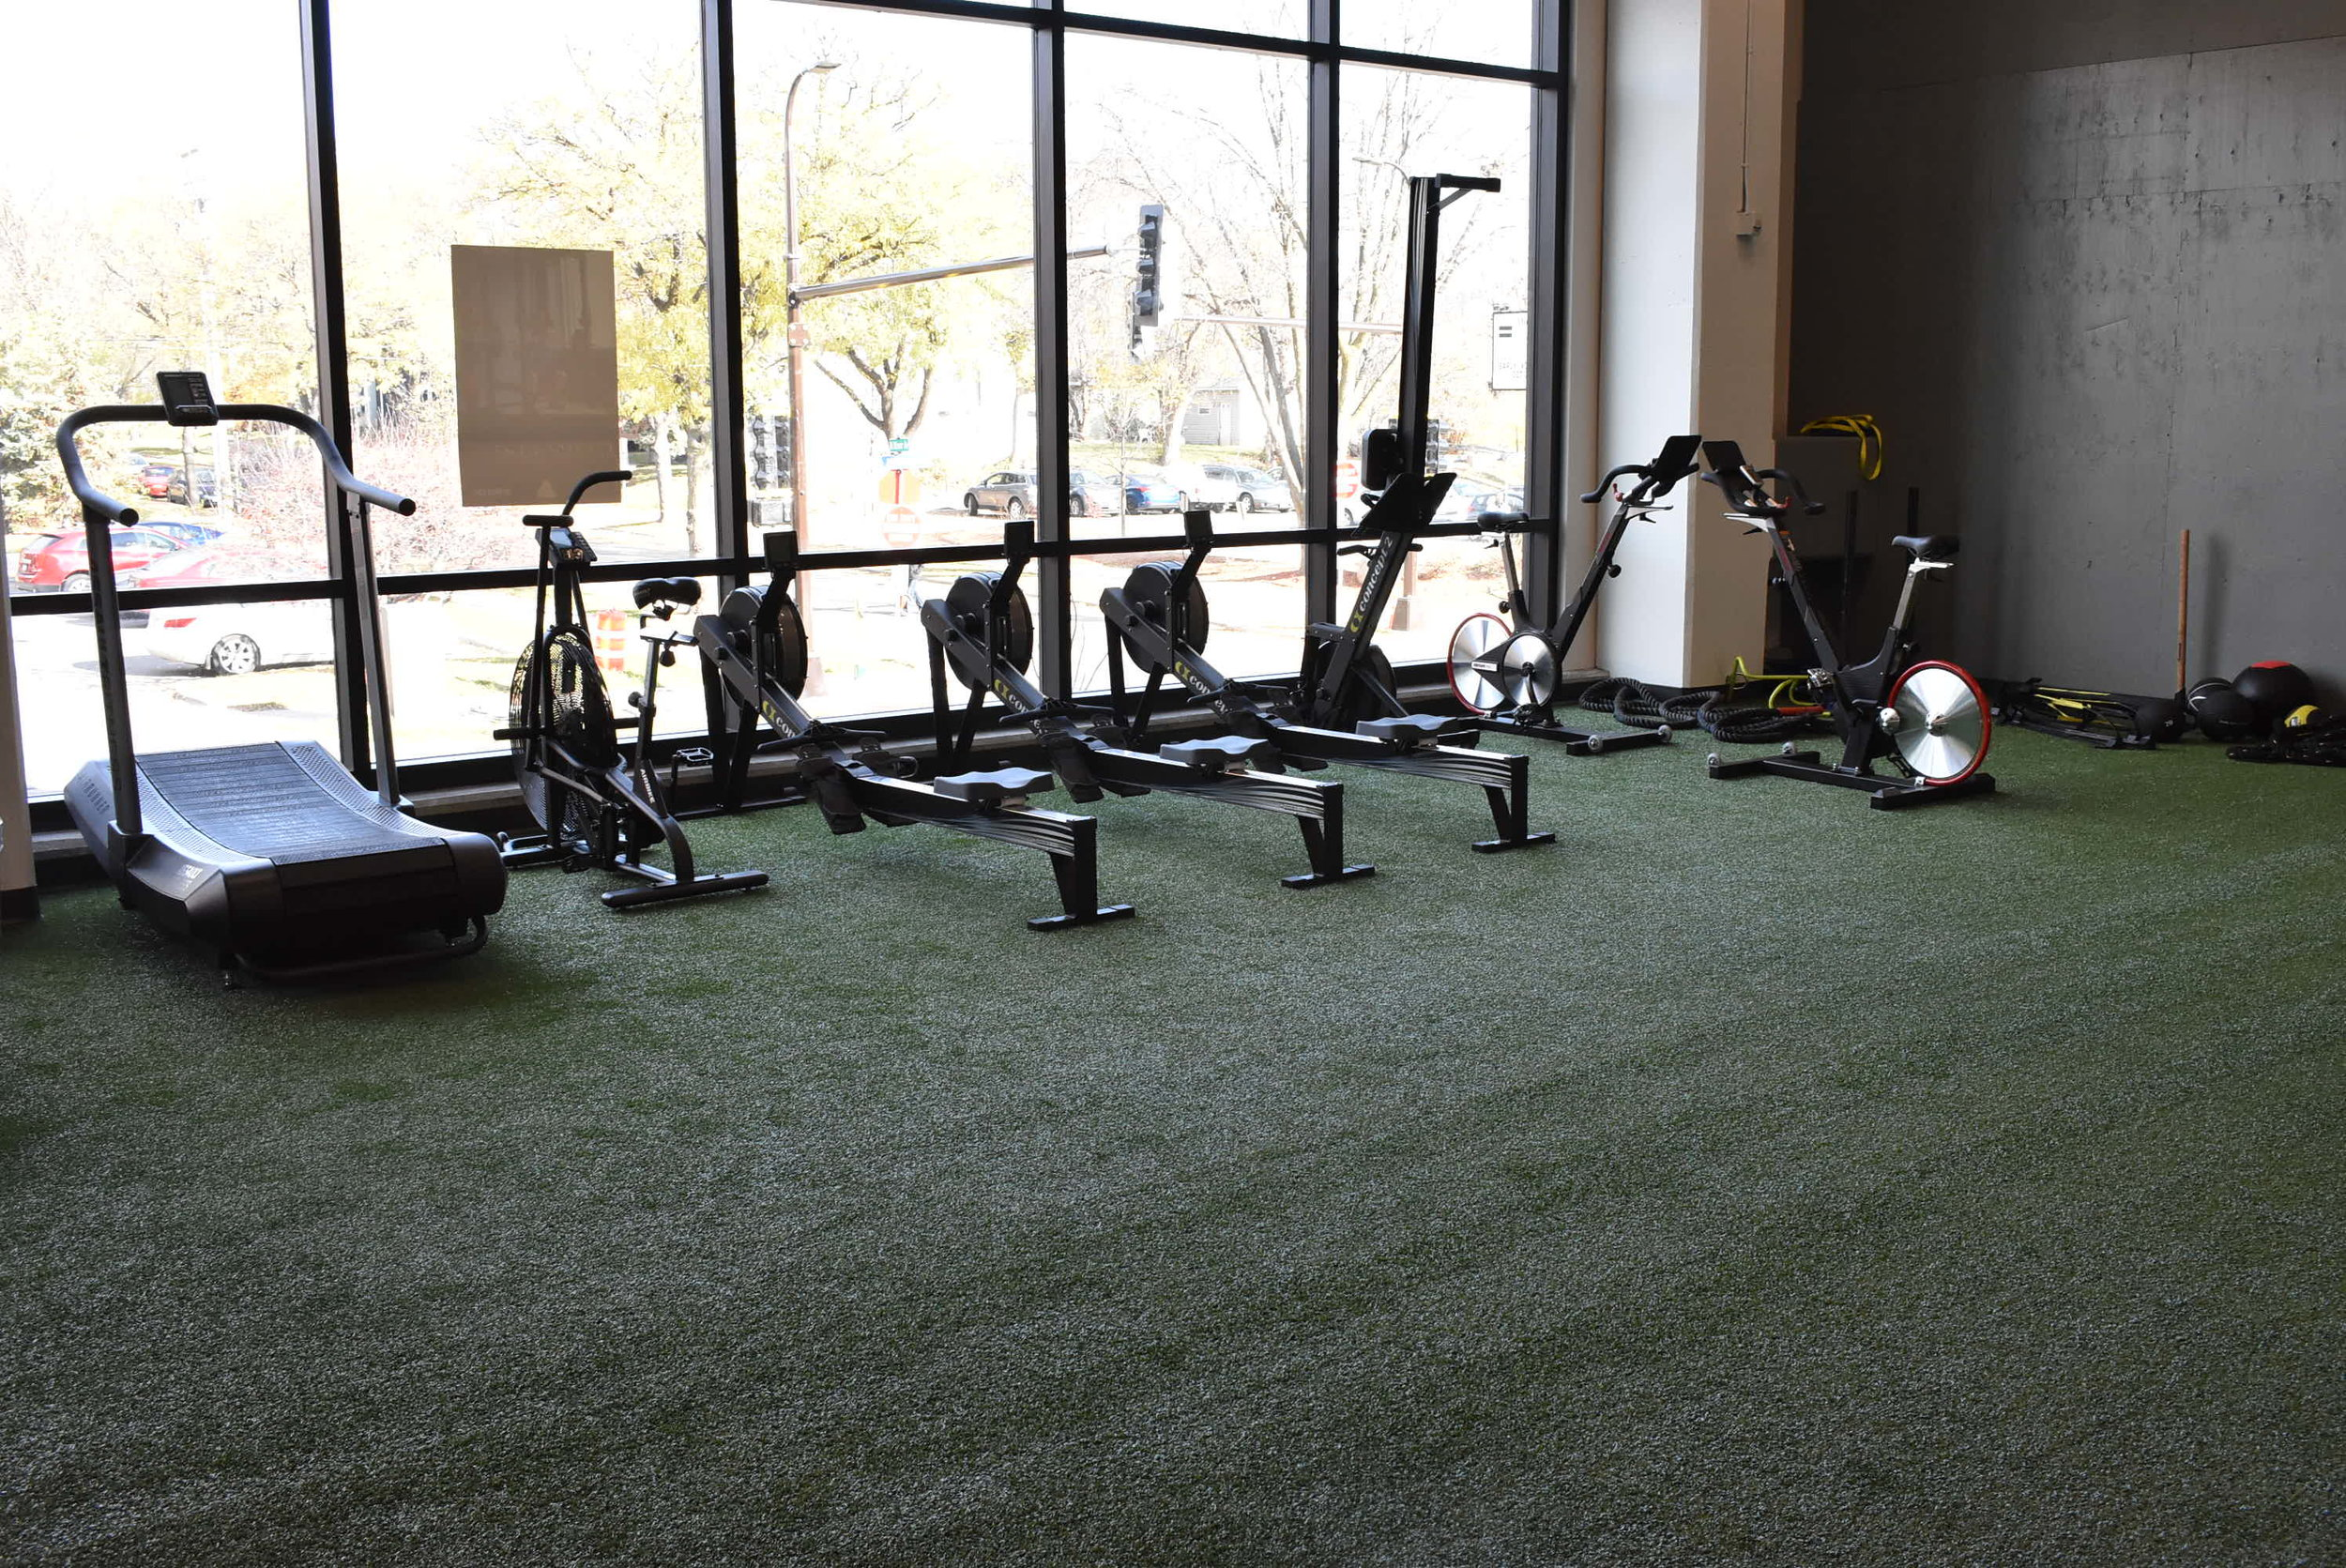 ME & I Fitness is home to a large empty area of grassy turf which members can use for a variety of exercises. Machines can be moved around the space as needed.  Photo by Cirien Saadeh